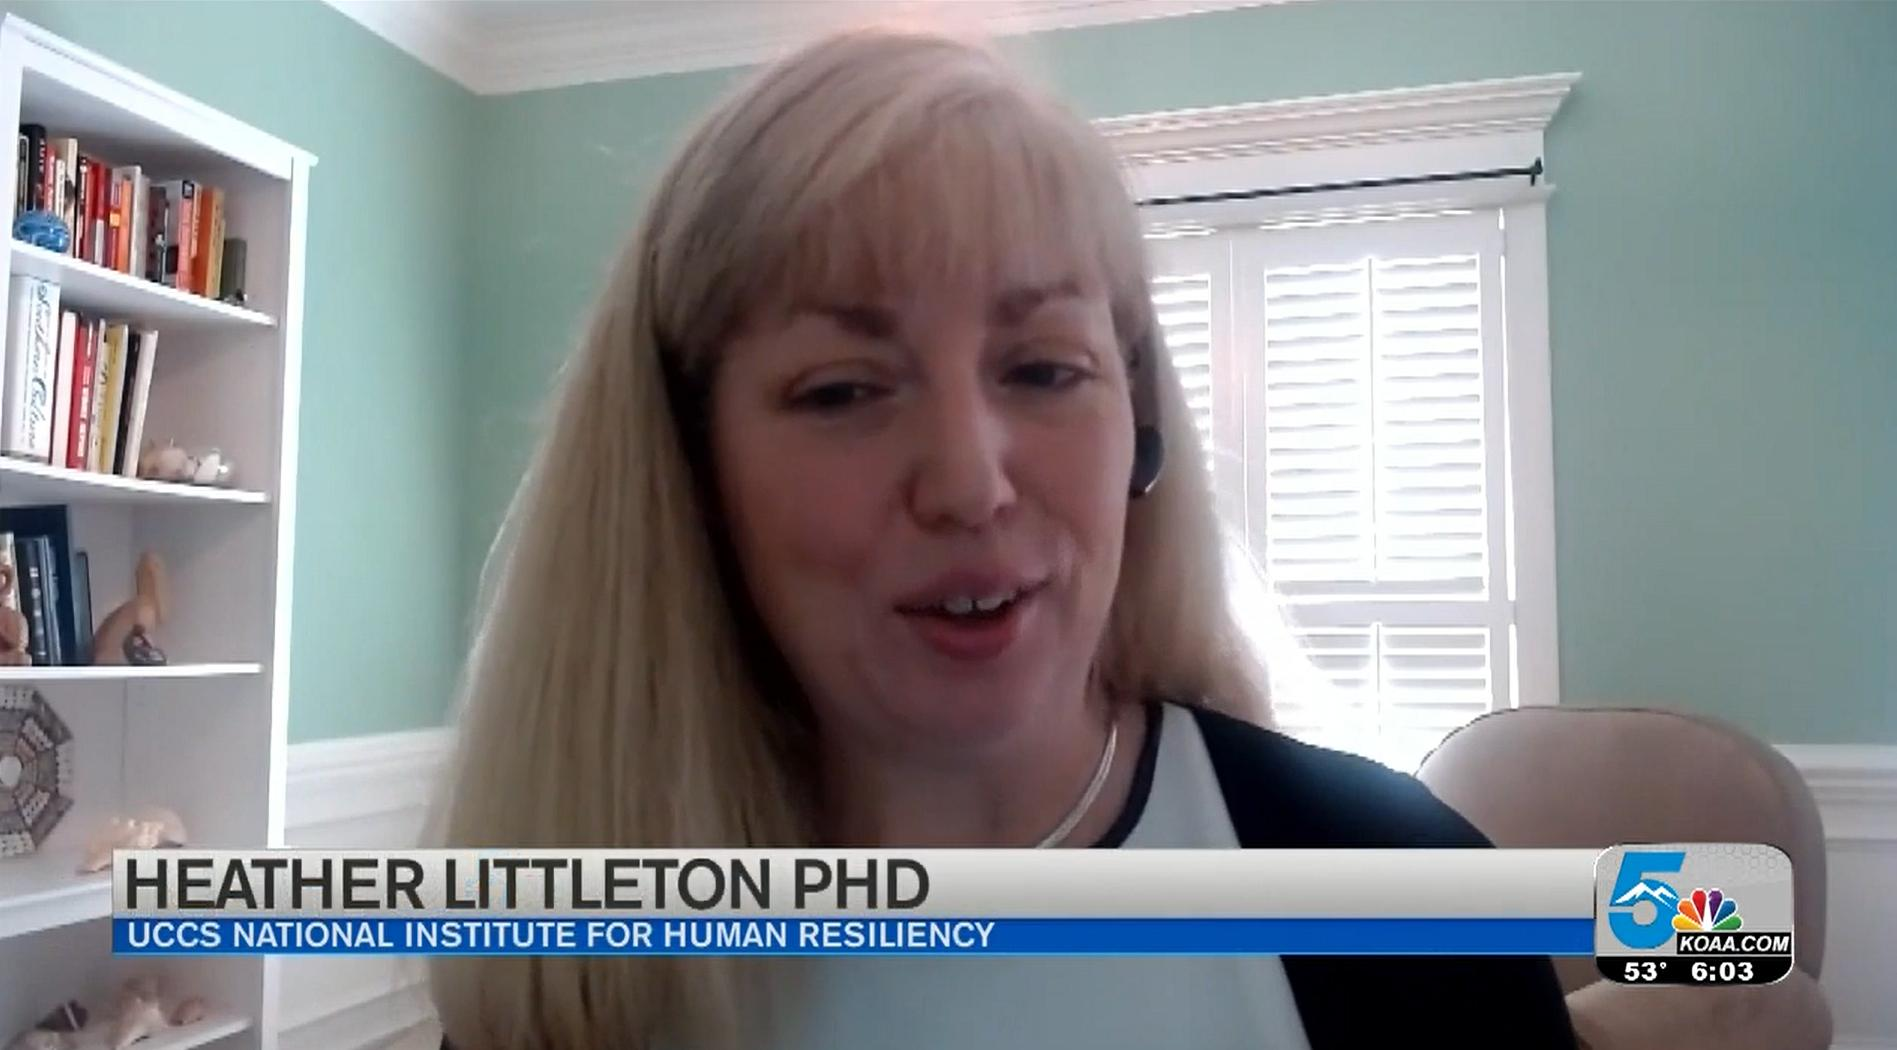 Screenshot of Heather Littleton during a TV interview from home